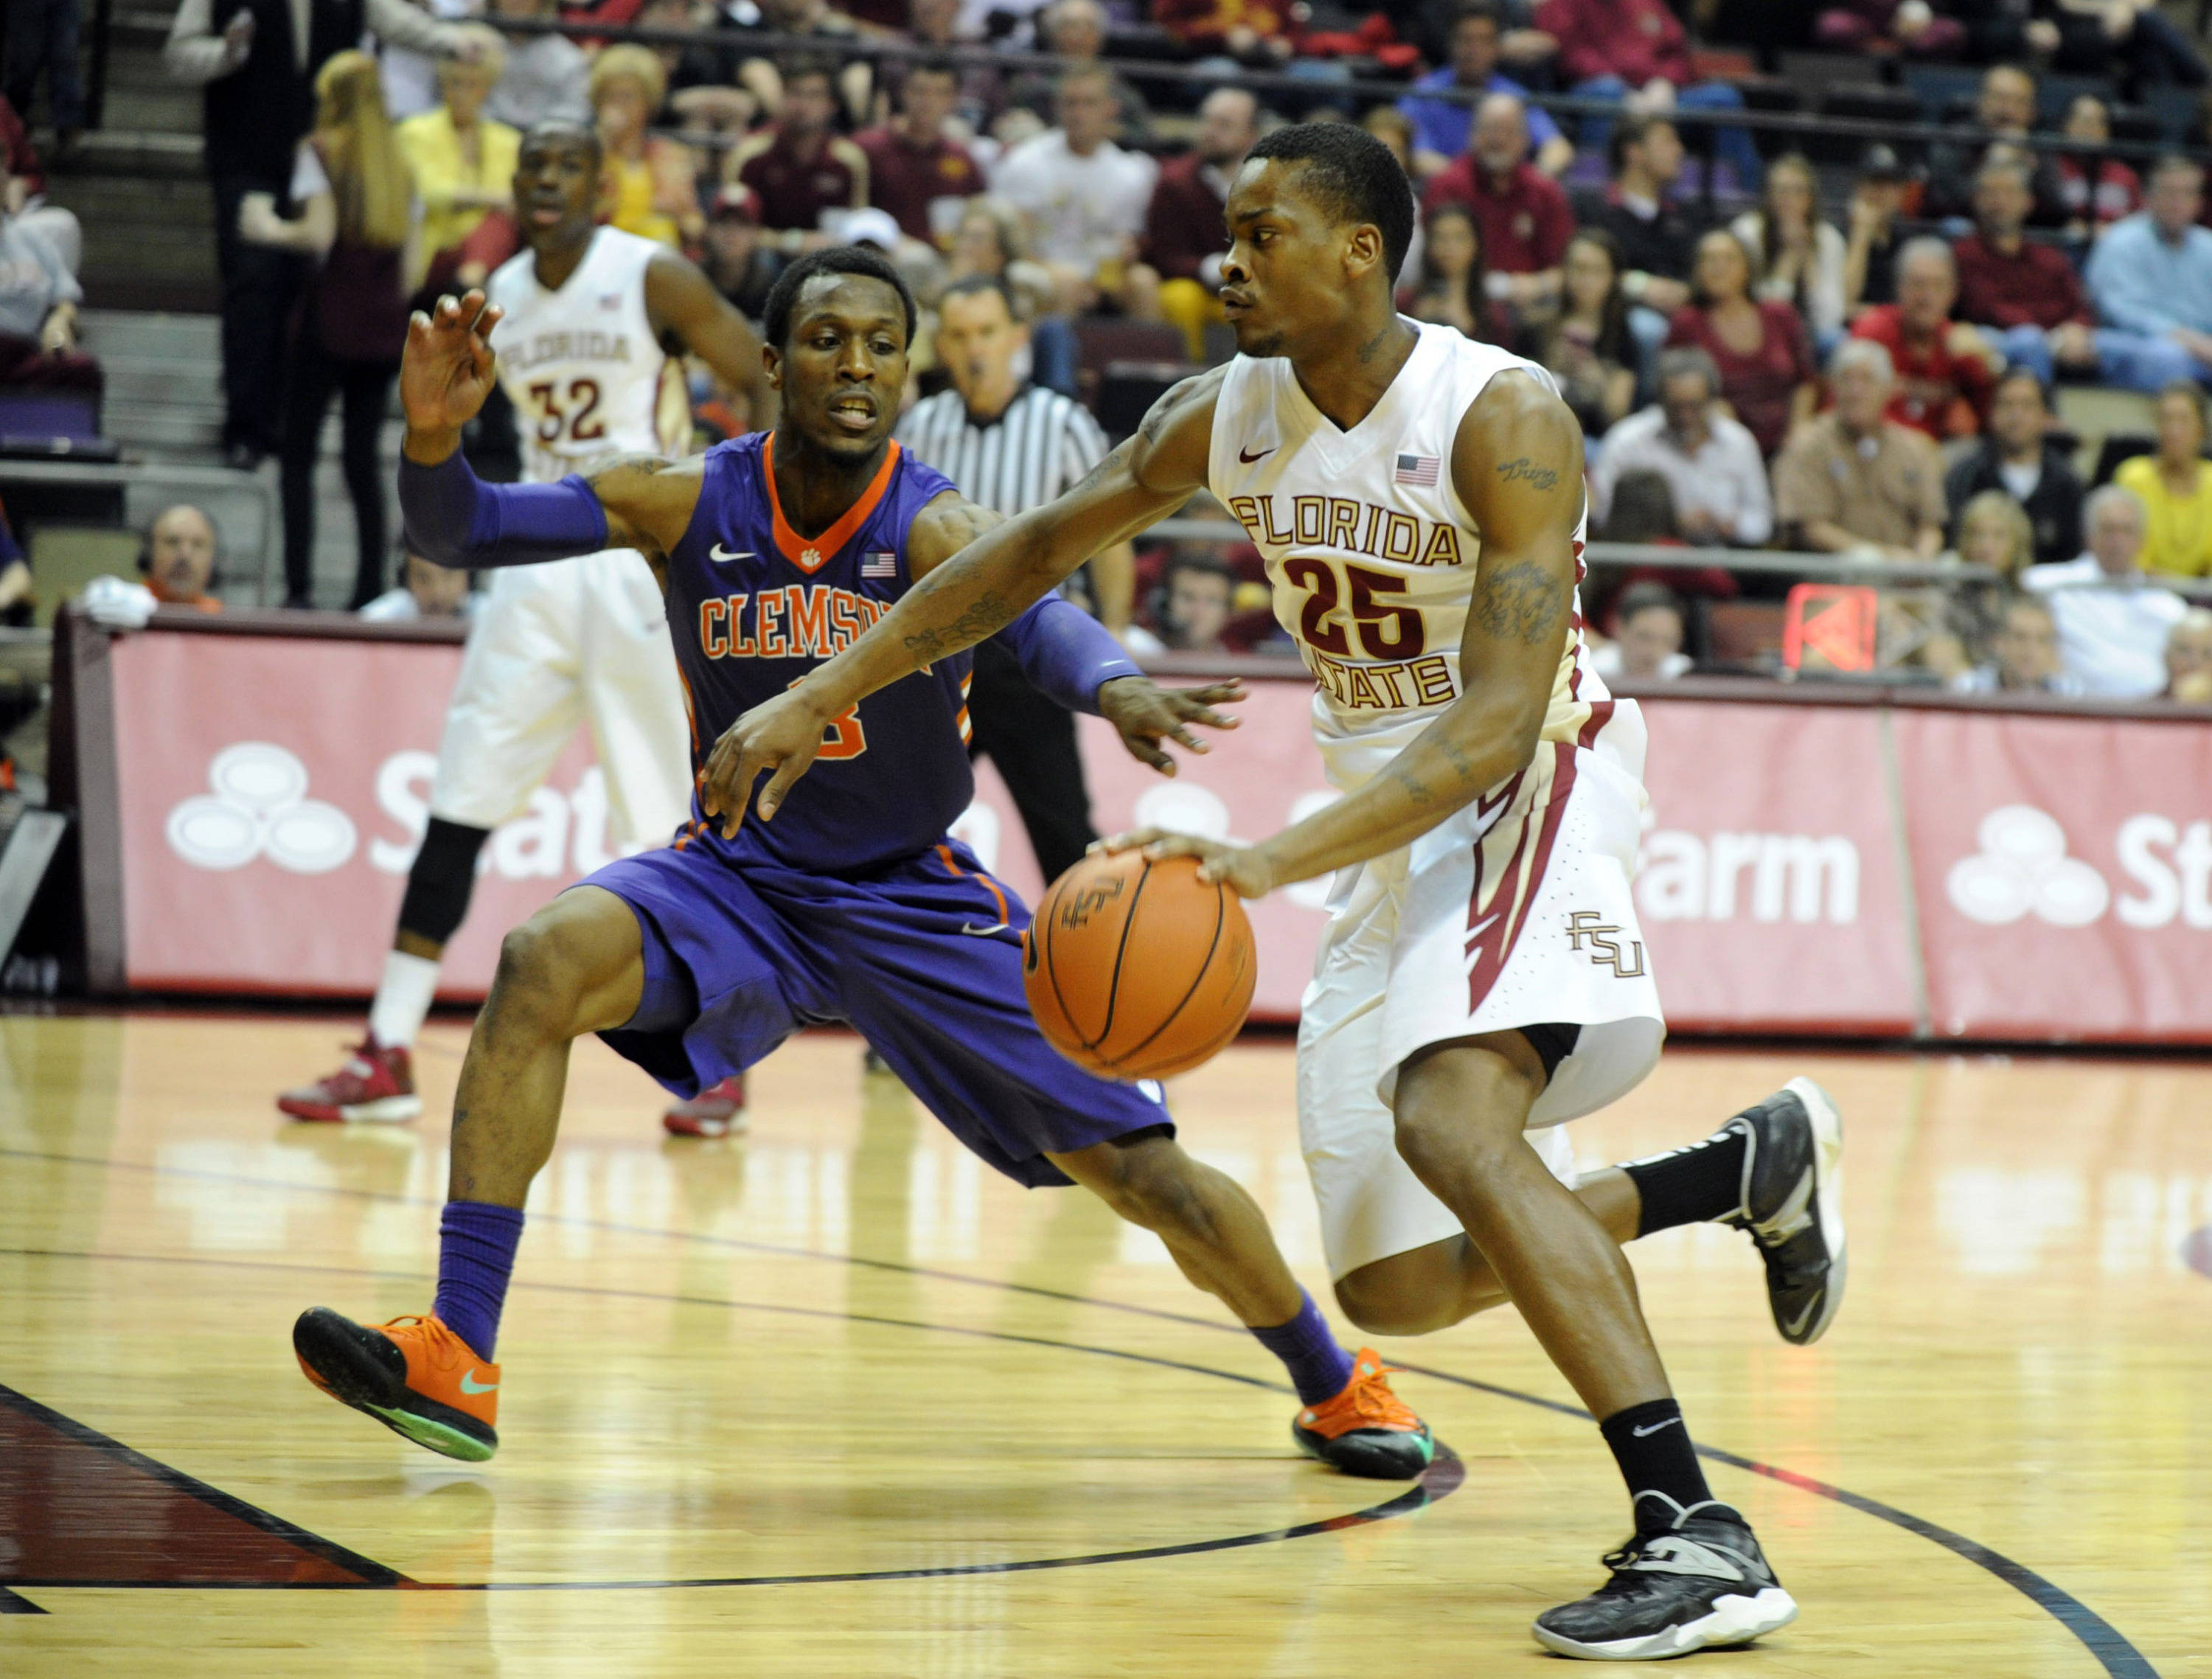 Feb 1, 2014; Tallahassee, FL, USA; Florida State Seminoles guard Aaron Thomas (25) moves the ball past Clemson Tigers guard Adonis Filer (3) during the first half at the Donald L. Tucker Center. Mandatory Credit: Melina Vastola-USA TODAY Sports